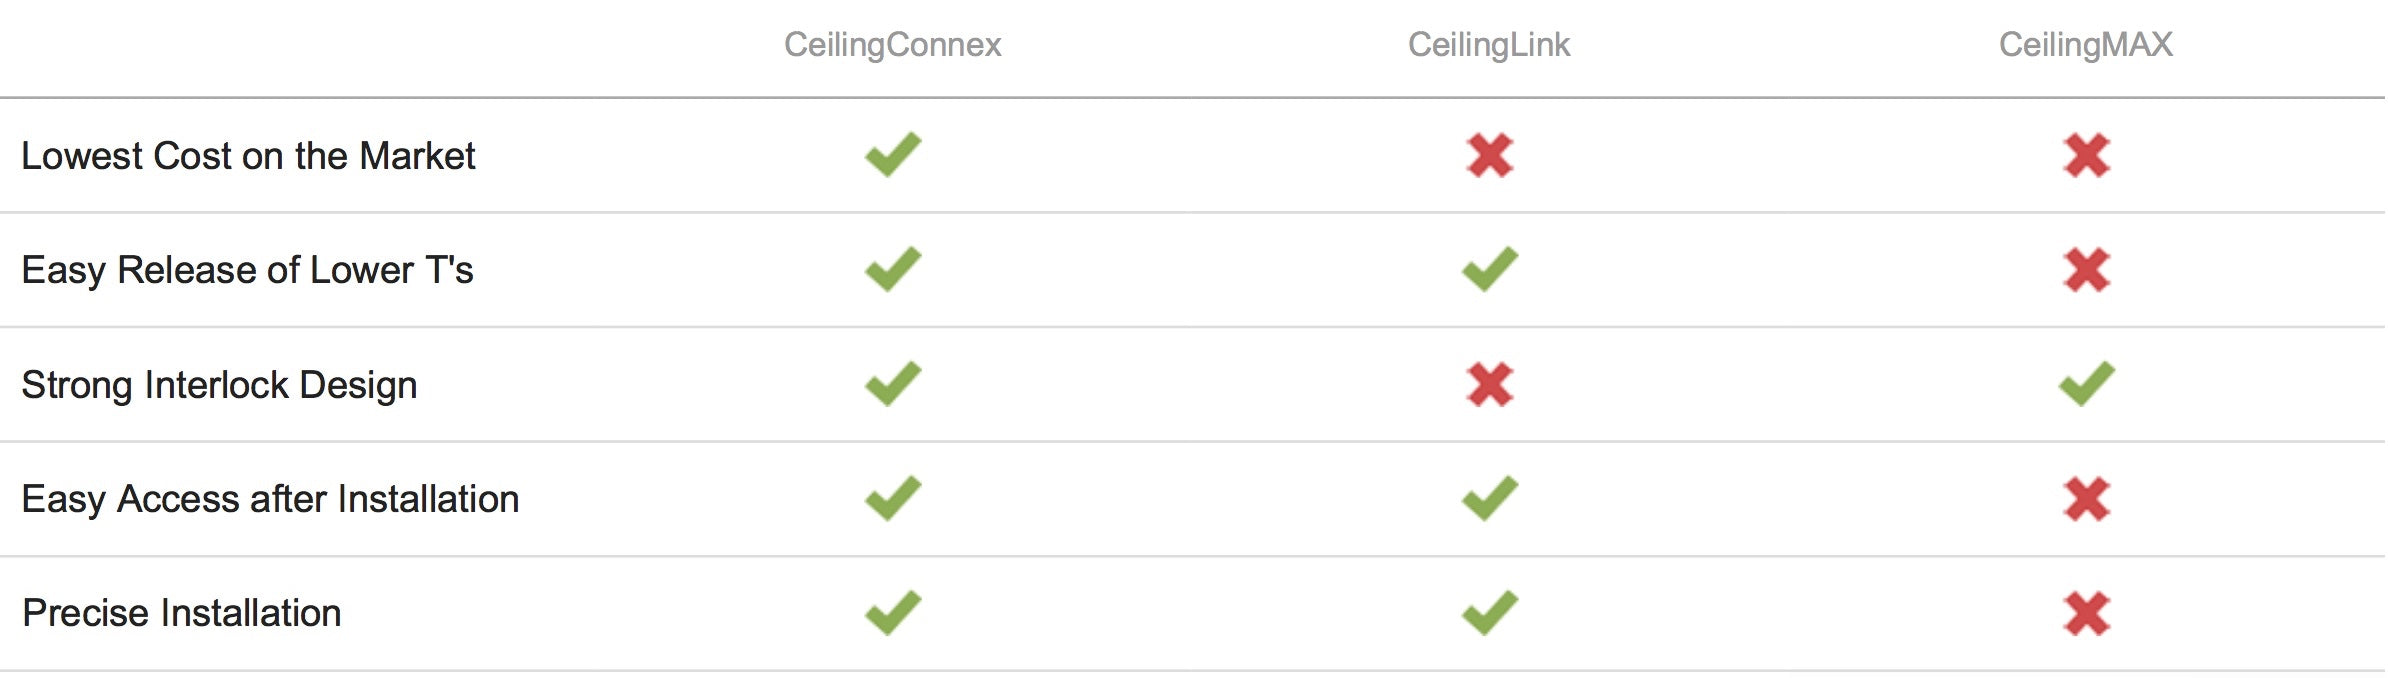 ceilingconnex-grid-compared-to-ceilinglink-and-ceilingmax.jpg